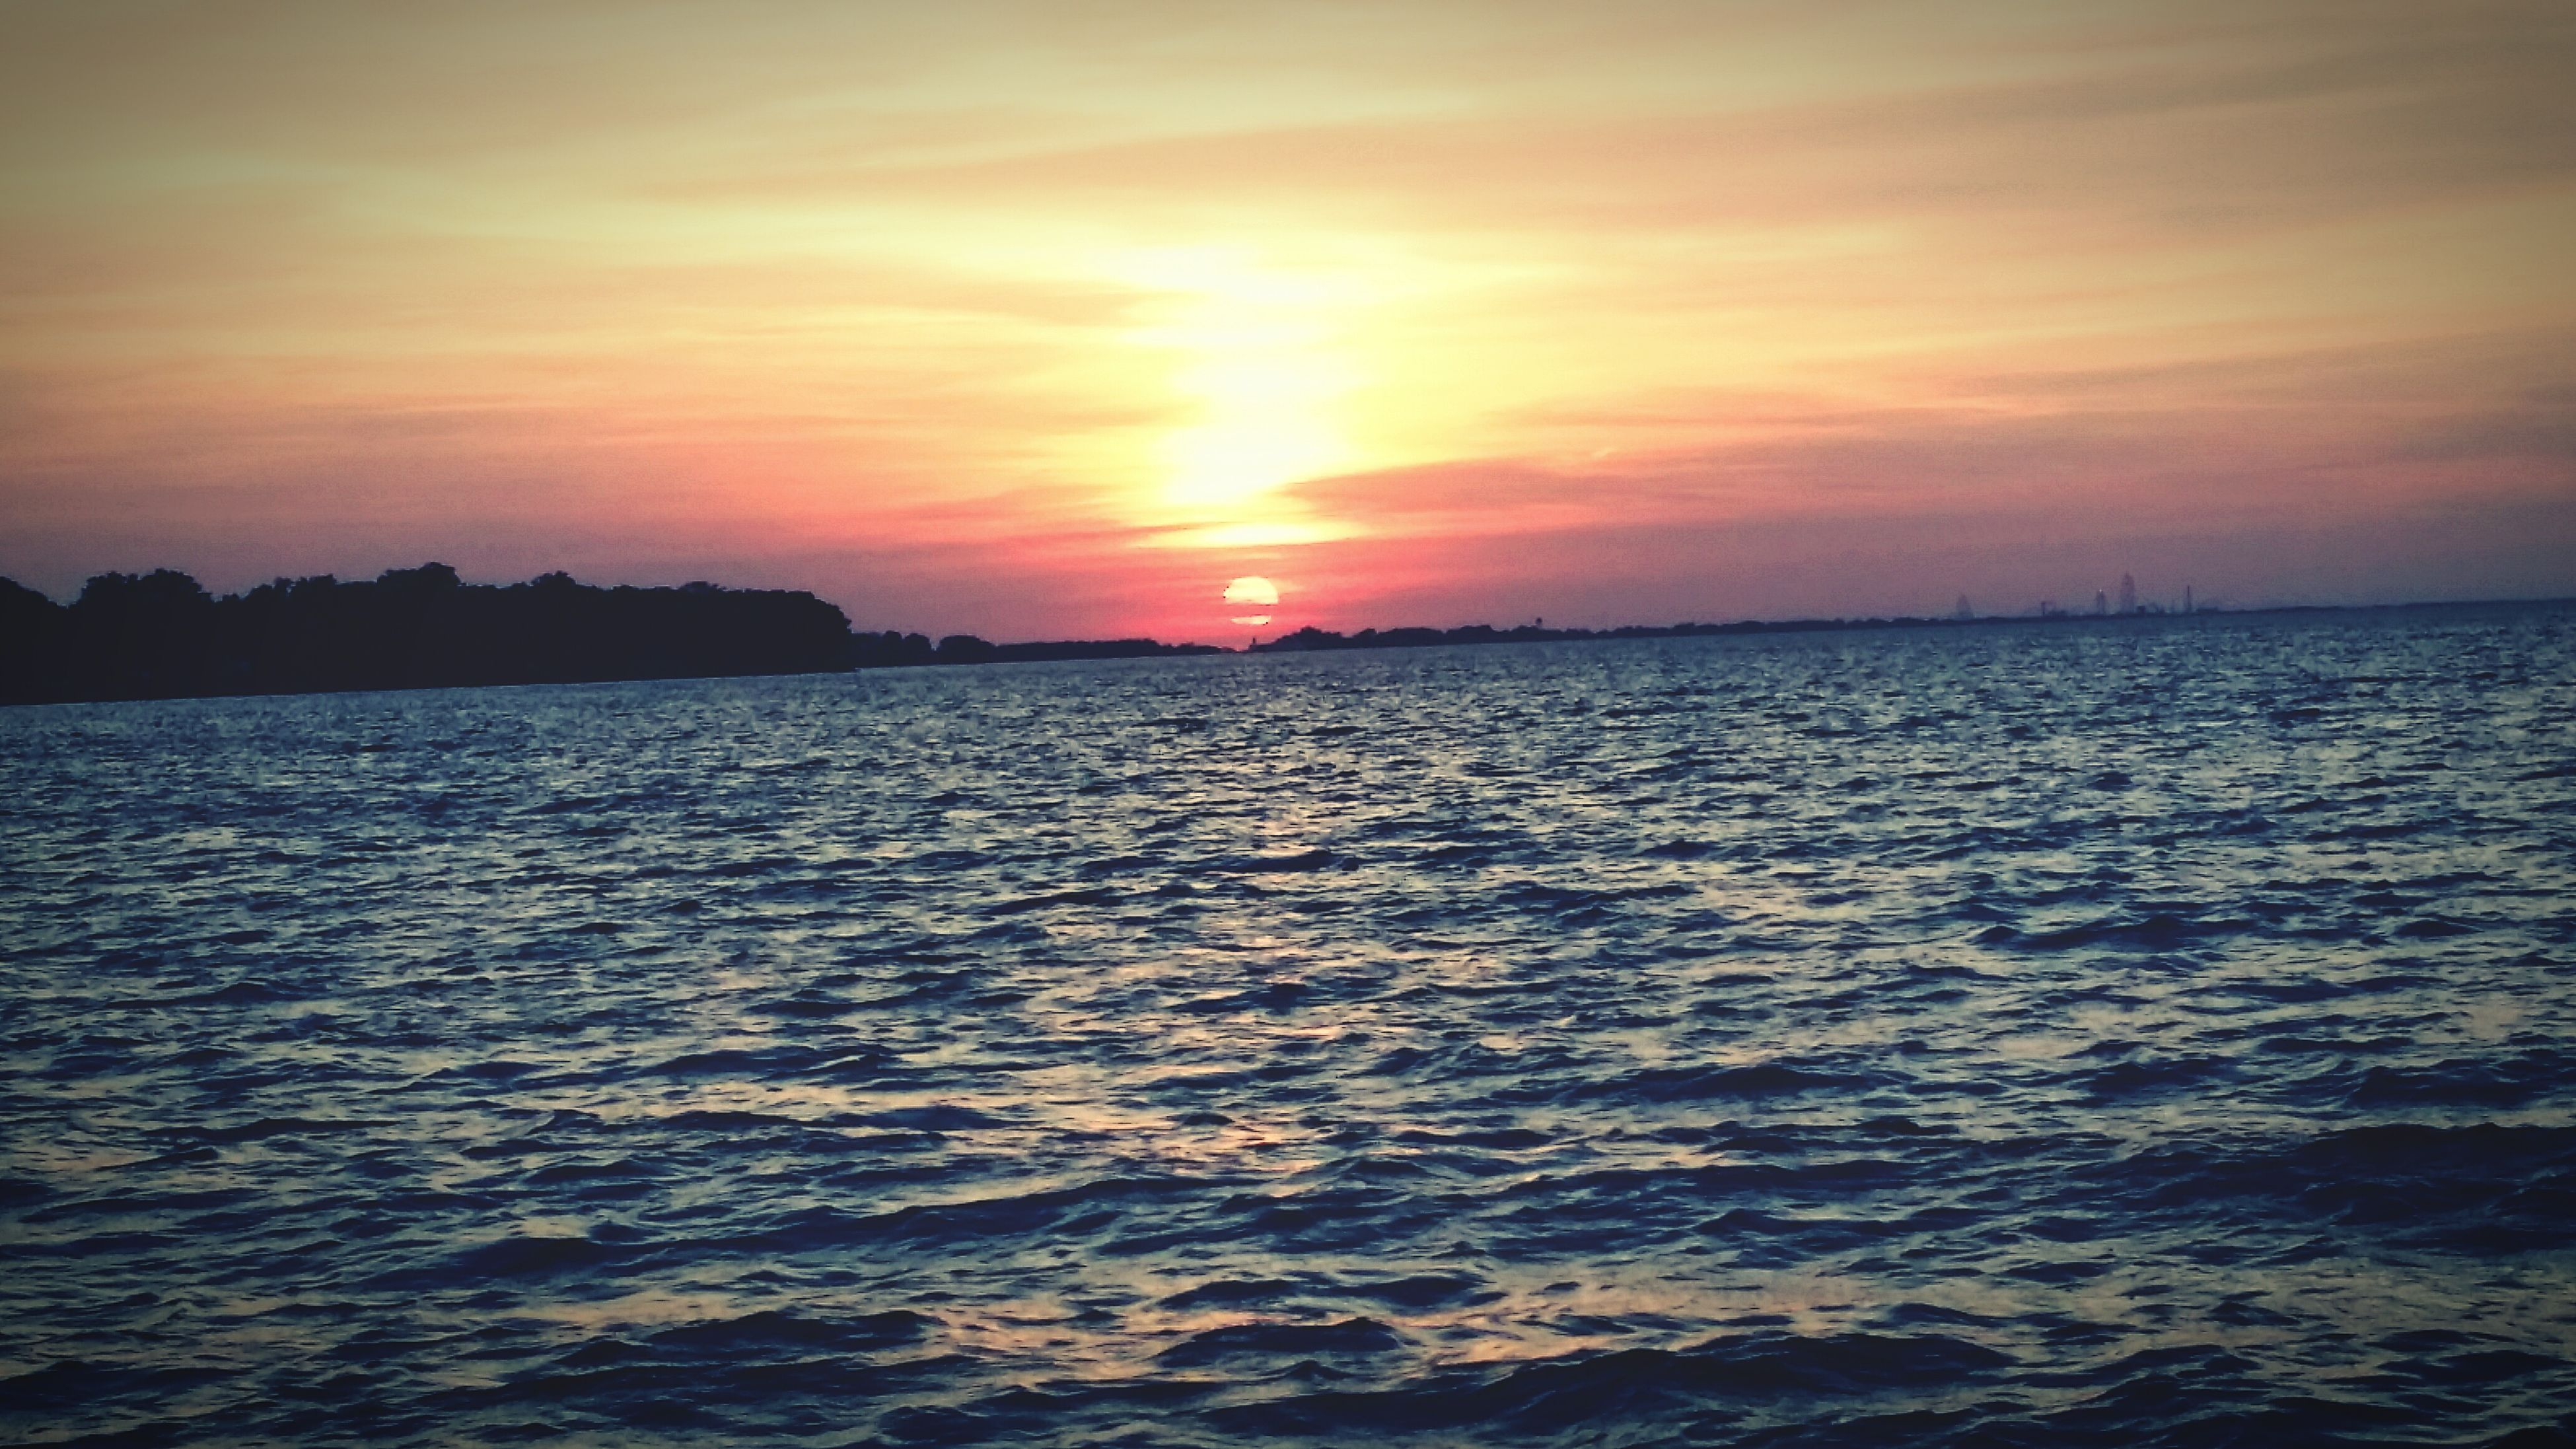 sunset, water, sea, scenics, sun, tranquil scene, beauty in nature, tranquility, sky, waterfront, horizon over water, orange color, rippled, idyllic, nature, reflection, sunlight, cloud - sky, seascape, silhouette